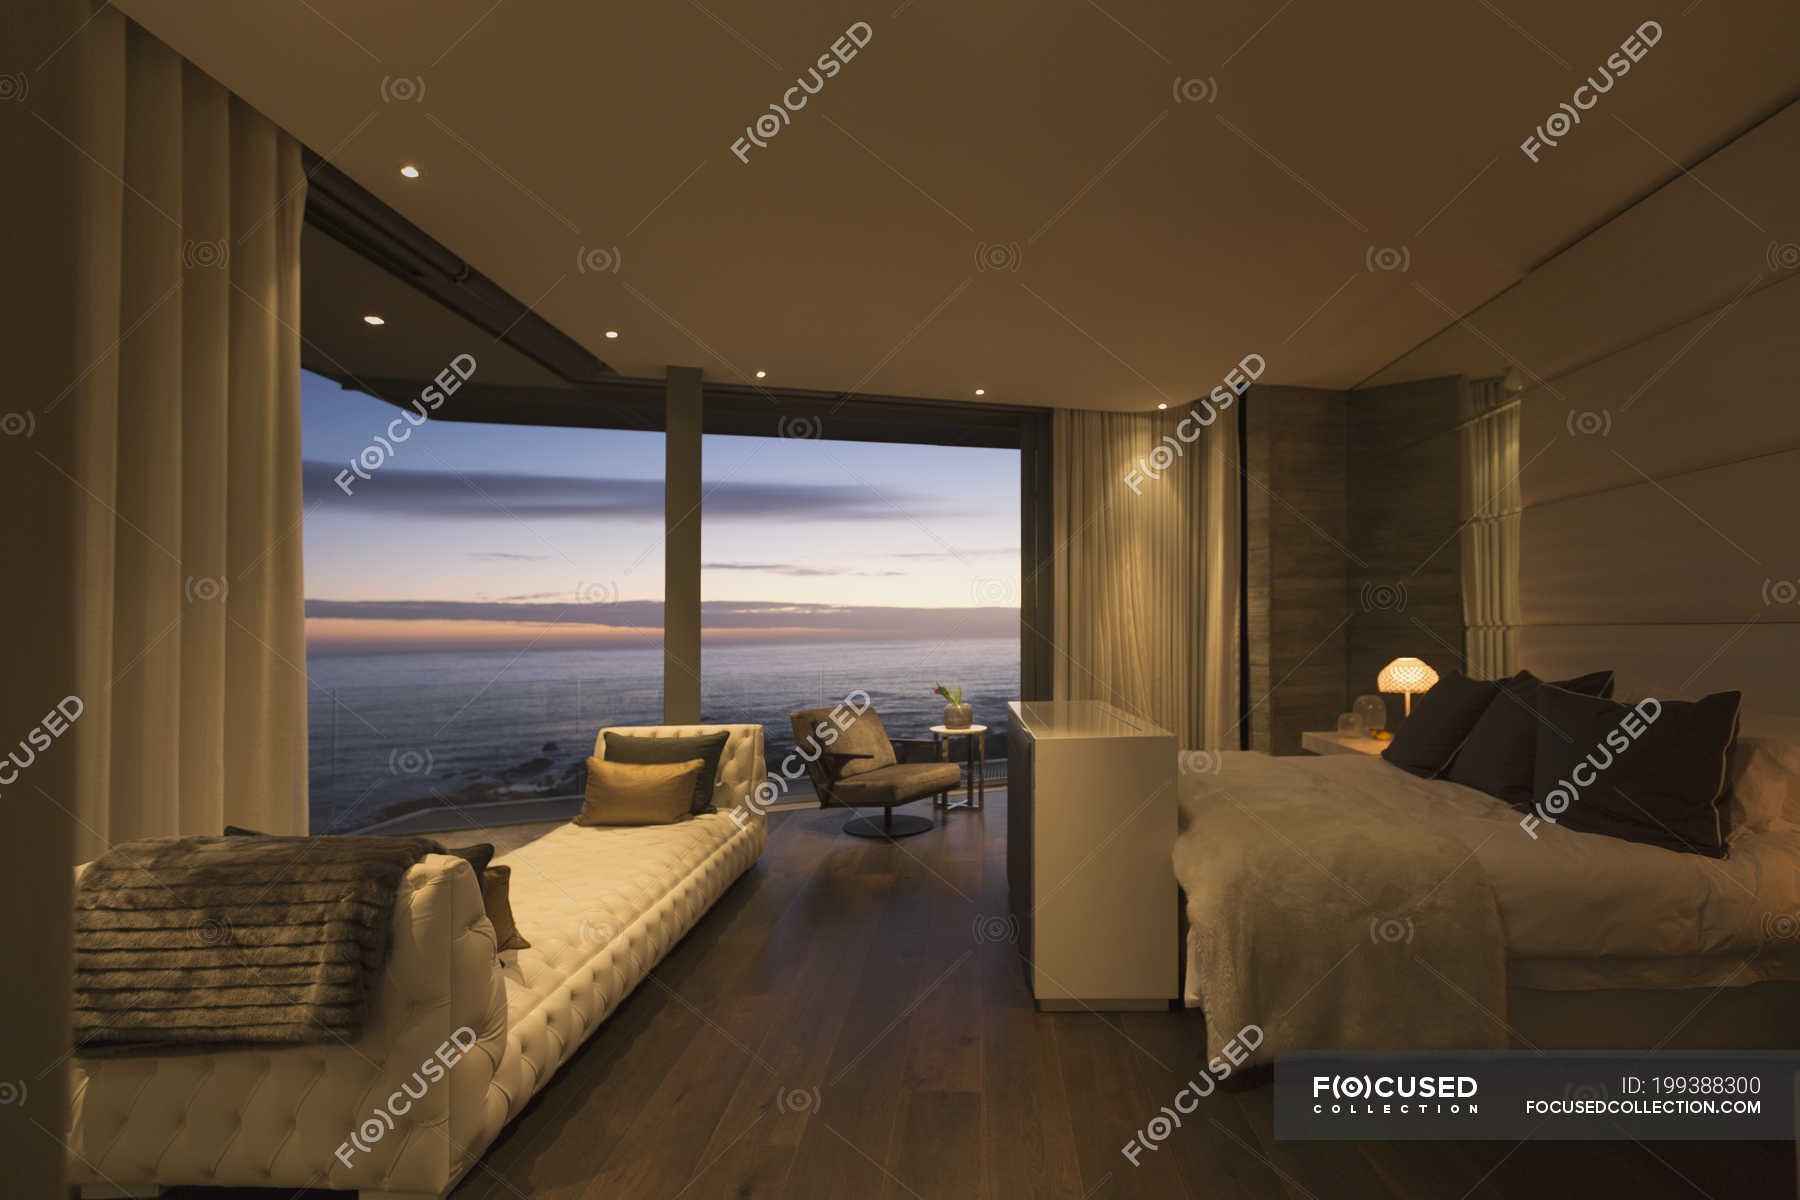 Twilight Ocean View Beyond Luxury Home Showcase Bedroom Tranquility Domestic Life Stock Photo 199388300